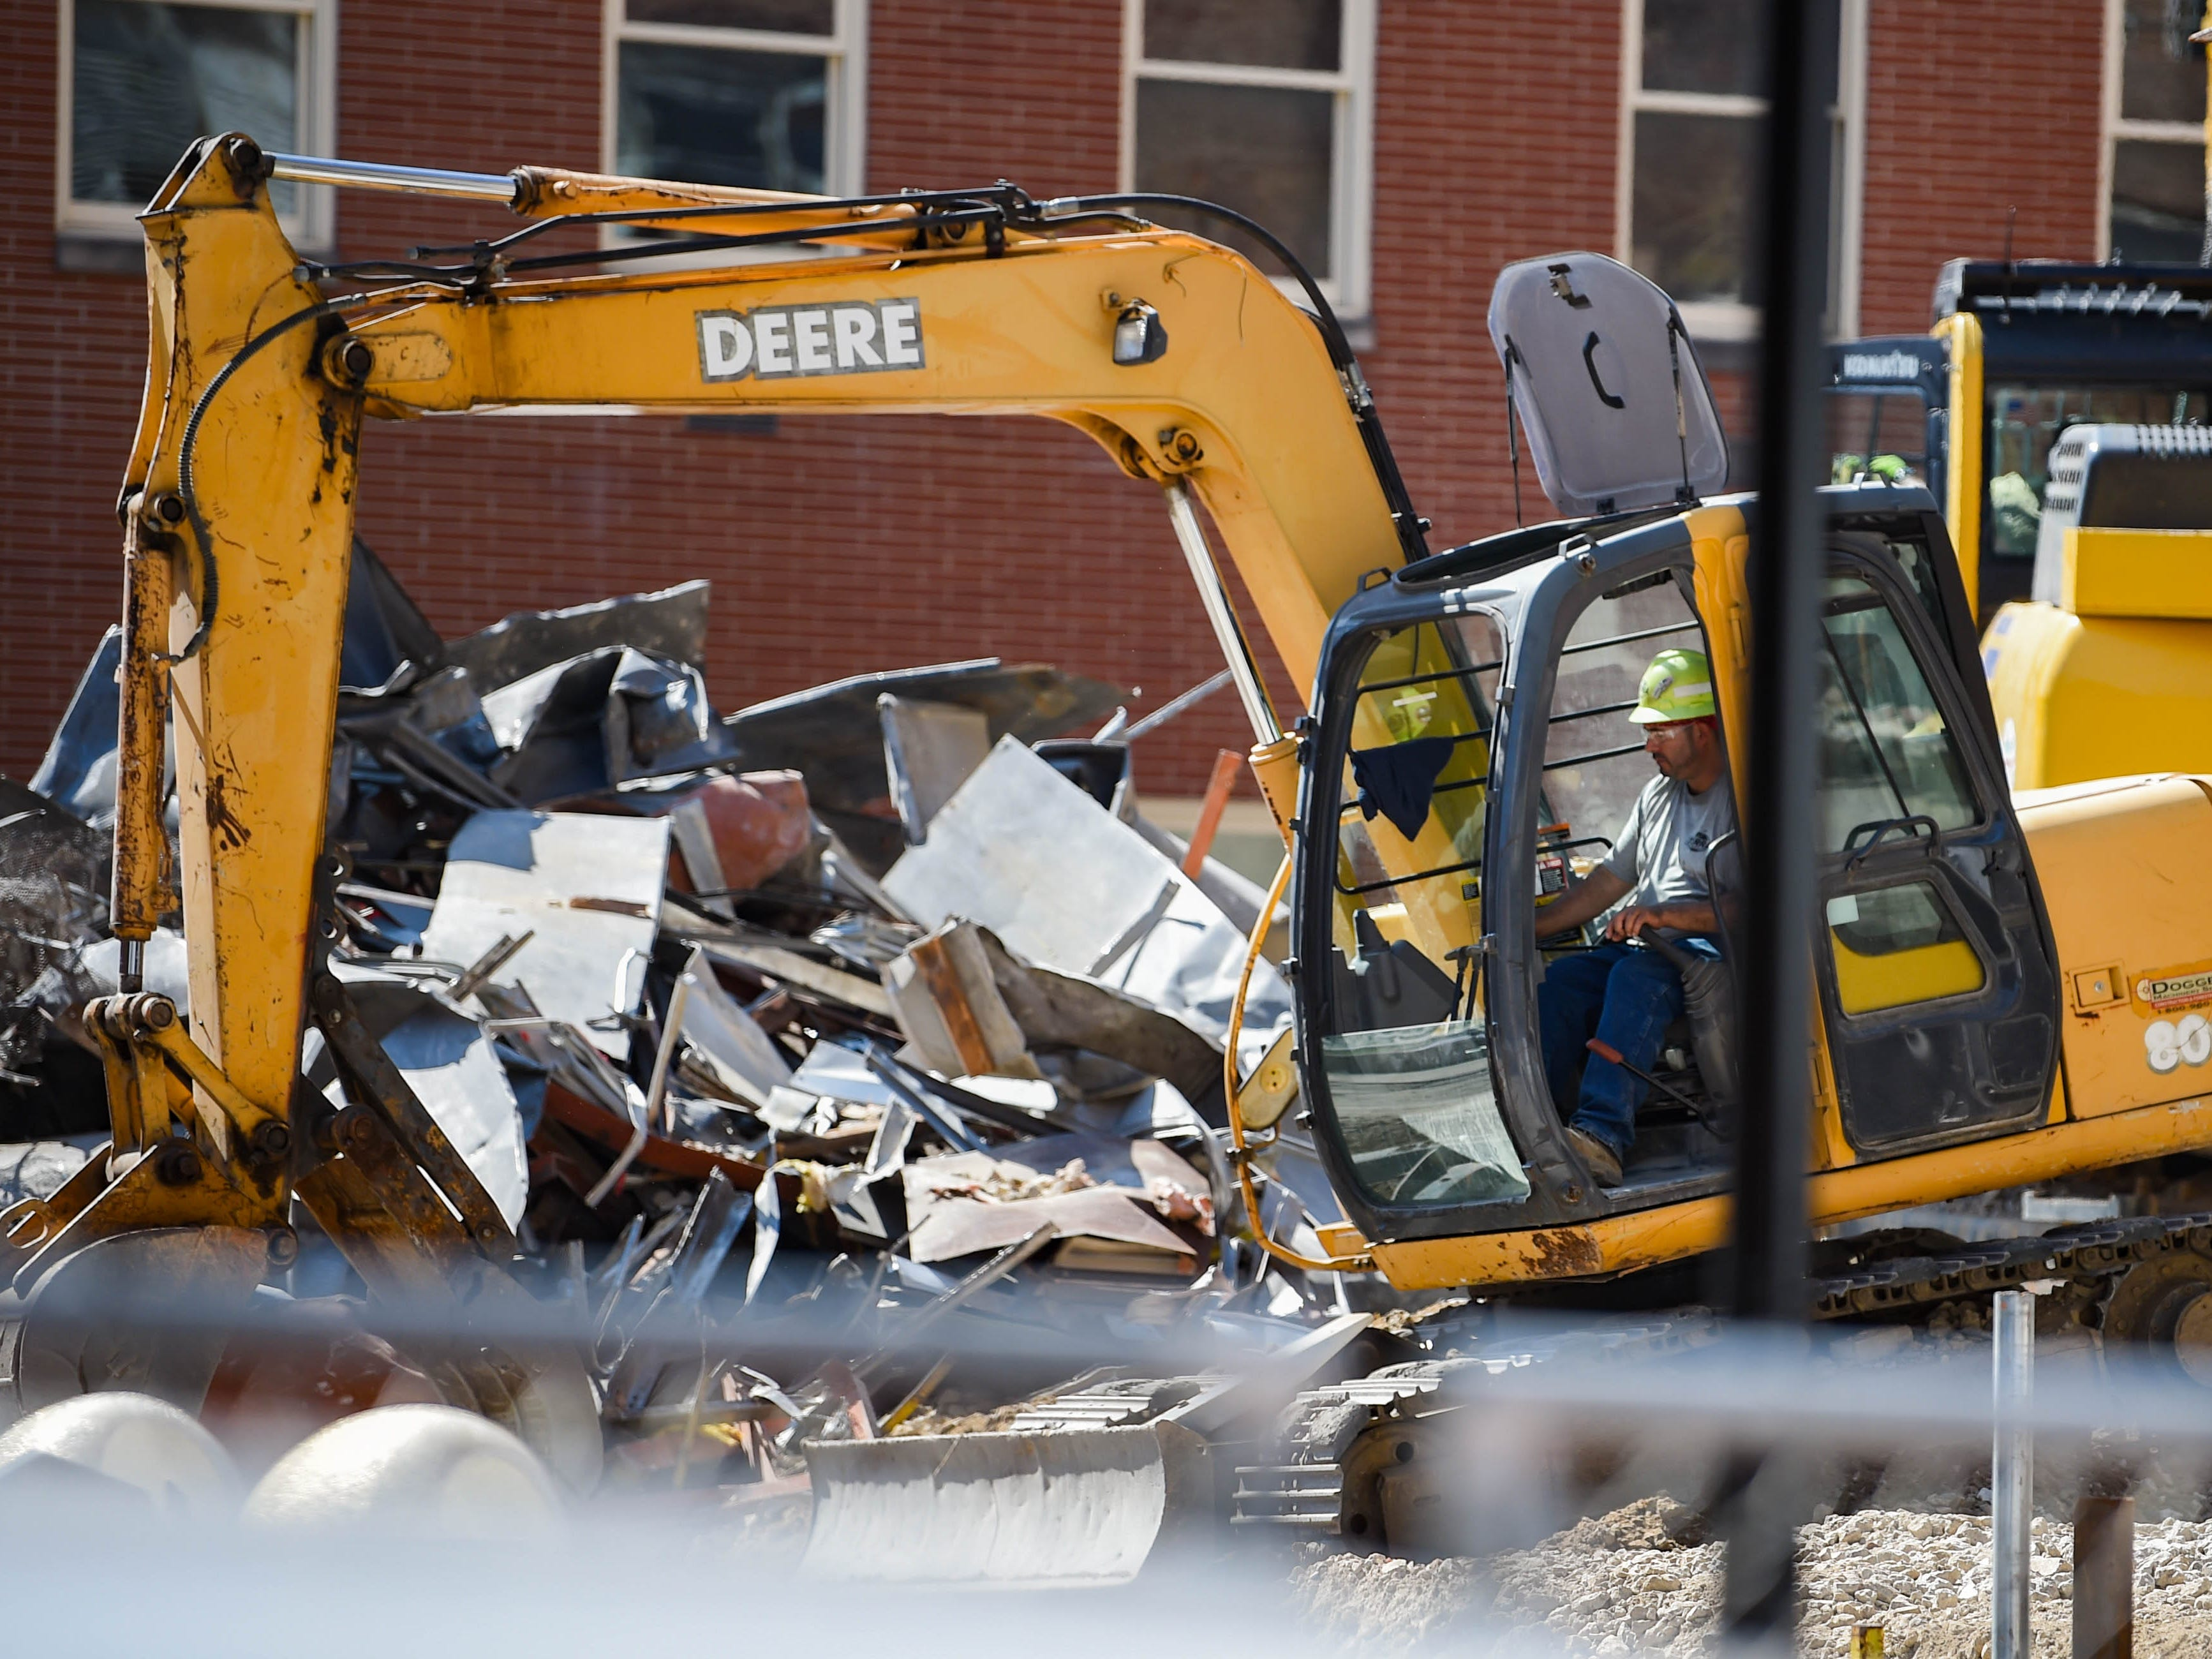 The trackhoe puts all debris in one area before putting on the back of a dump truck at the Yorktowne Hotel on October 4, 2018.